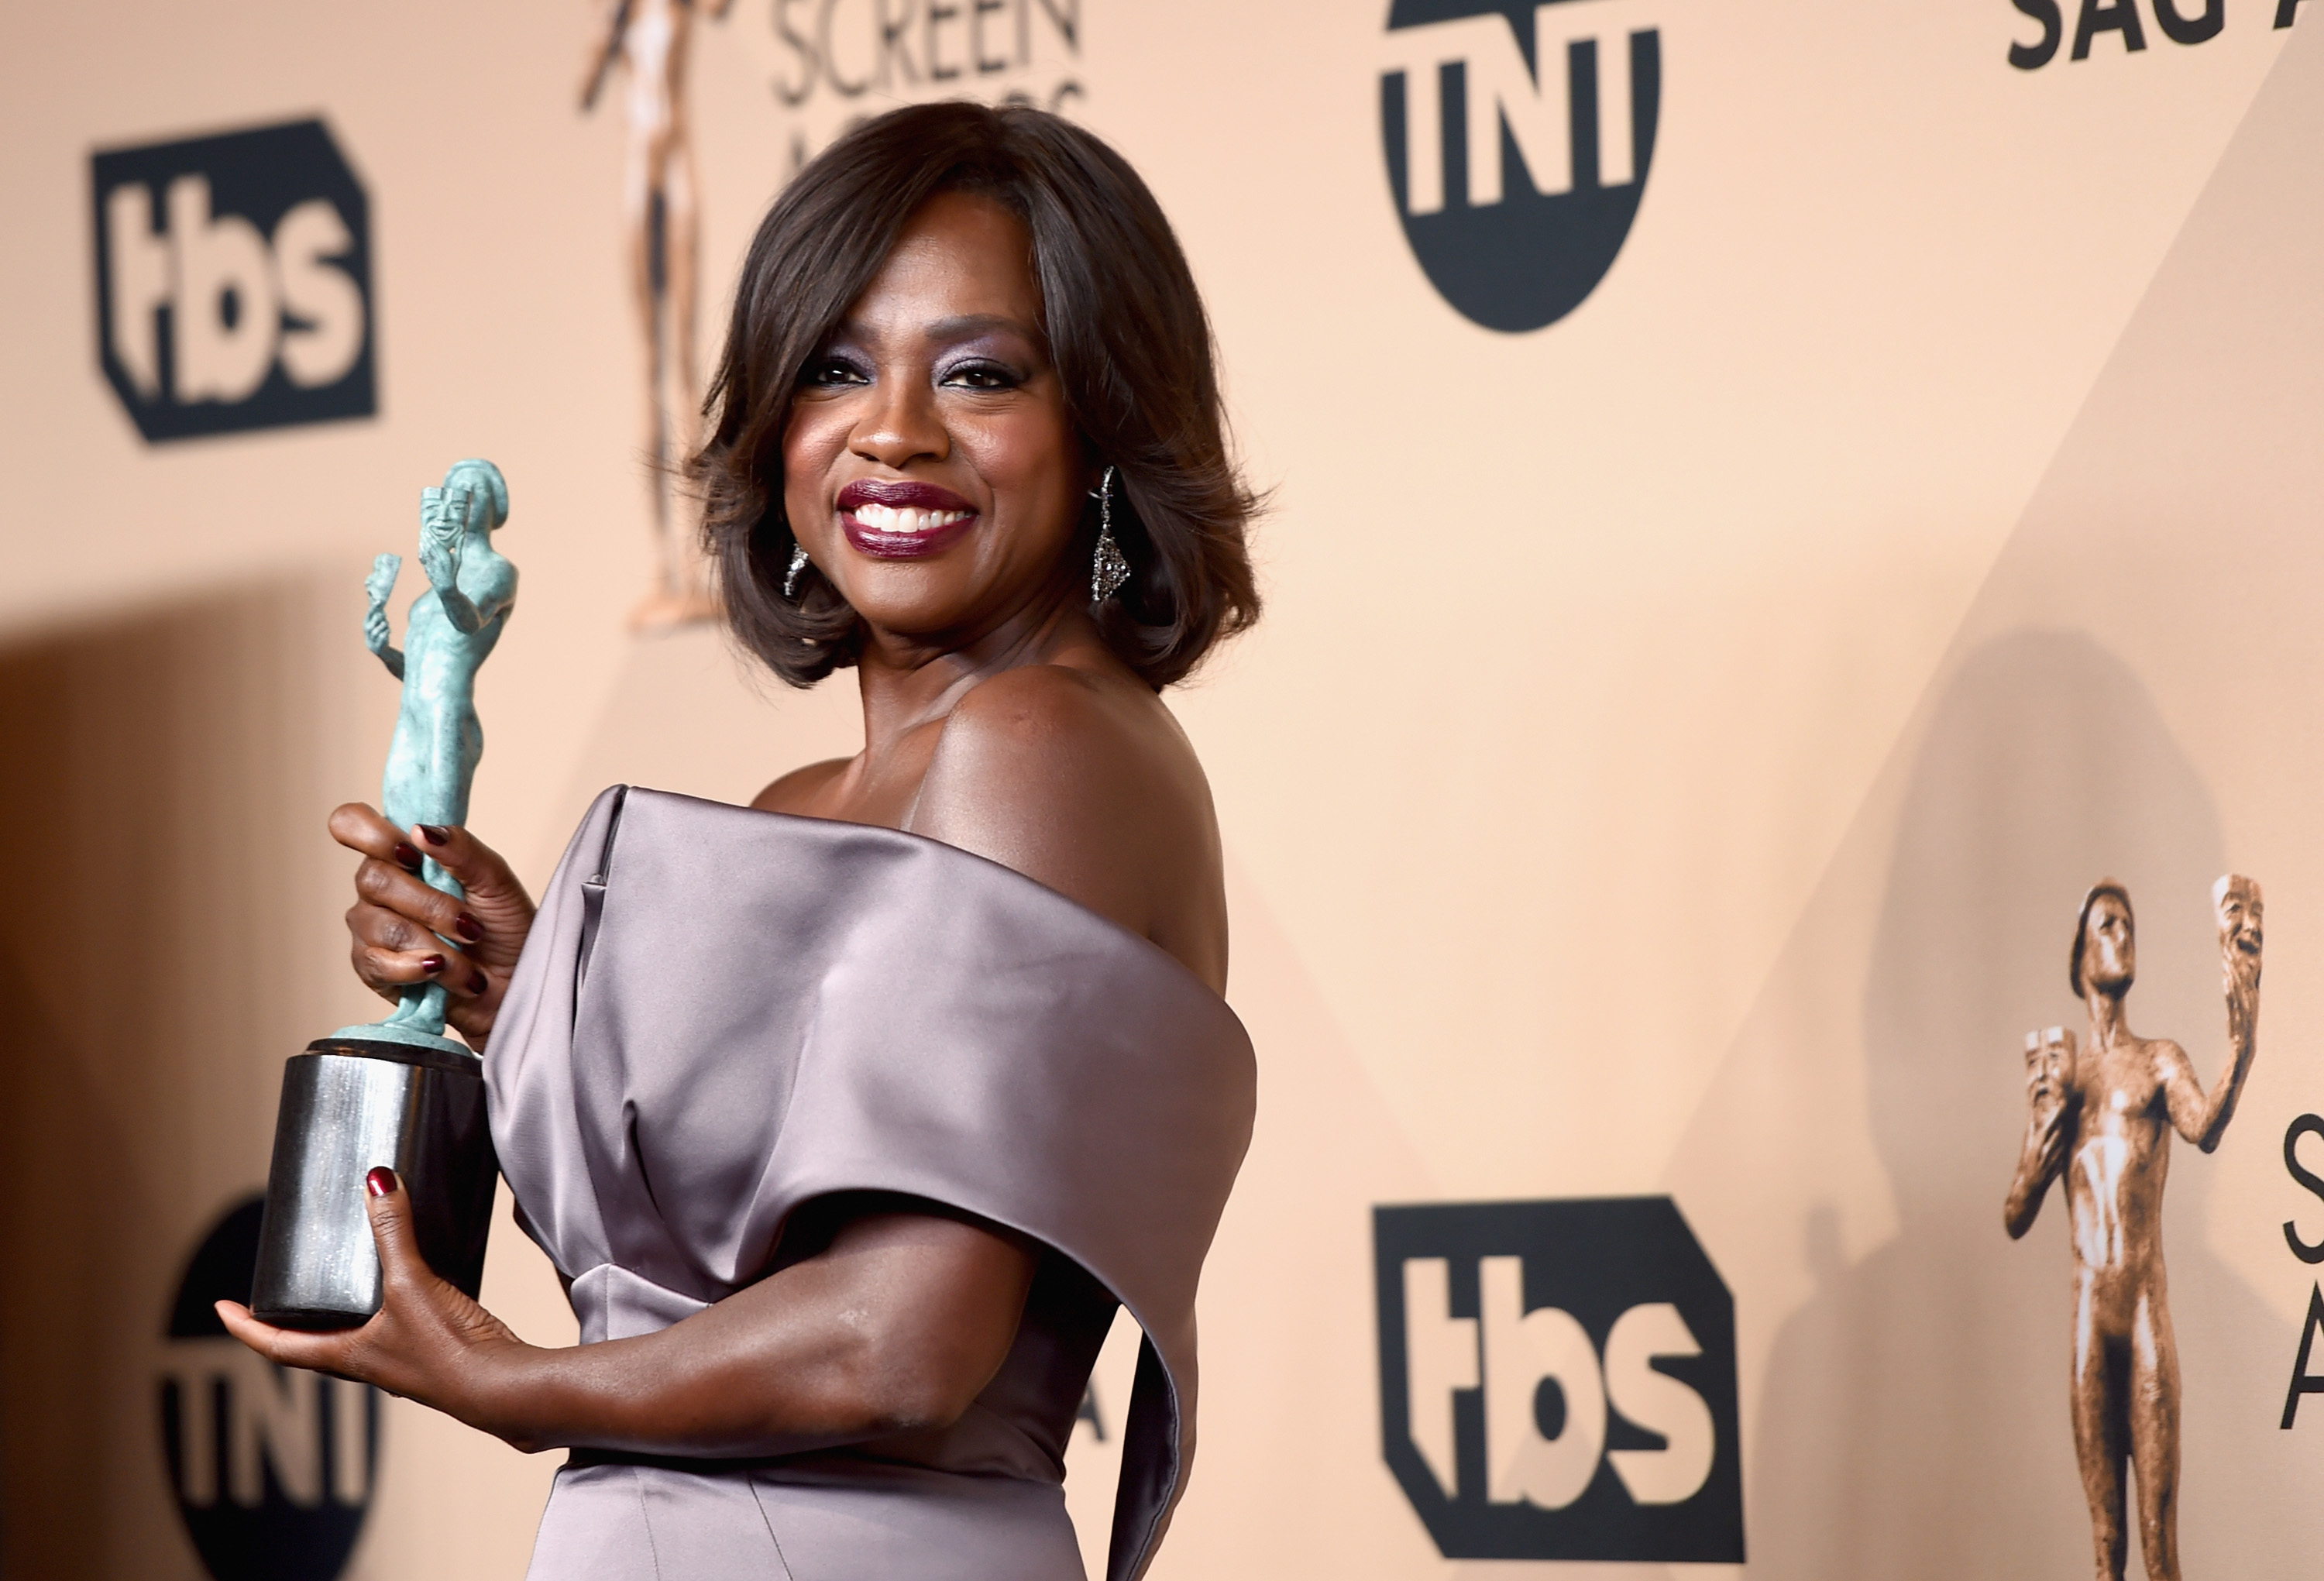 LOS ANGELES, CA - JANUARY 30:  Actress Viola Davis, winner of the Outstanding Performance by a Female Actor in a Drama Series award for 'How to Get Away with Murder,' poses in the press room during The 22nd Annual Screen Actors Guild Awards at The Shrine Auditorium on January 30, 2016 in Los Angeles, California. 25650_015  (Photo by Jason Merritt/Getty Images for Turner)